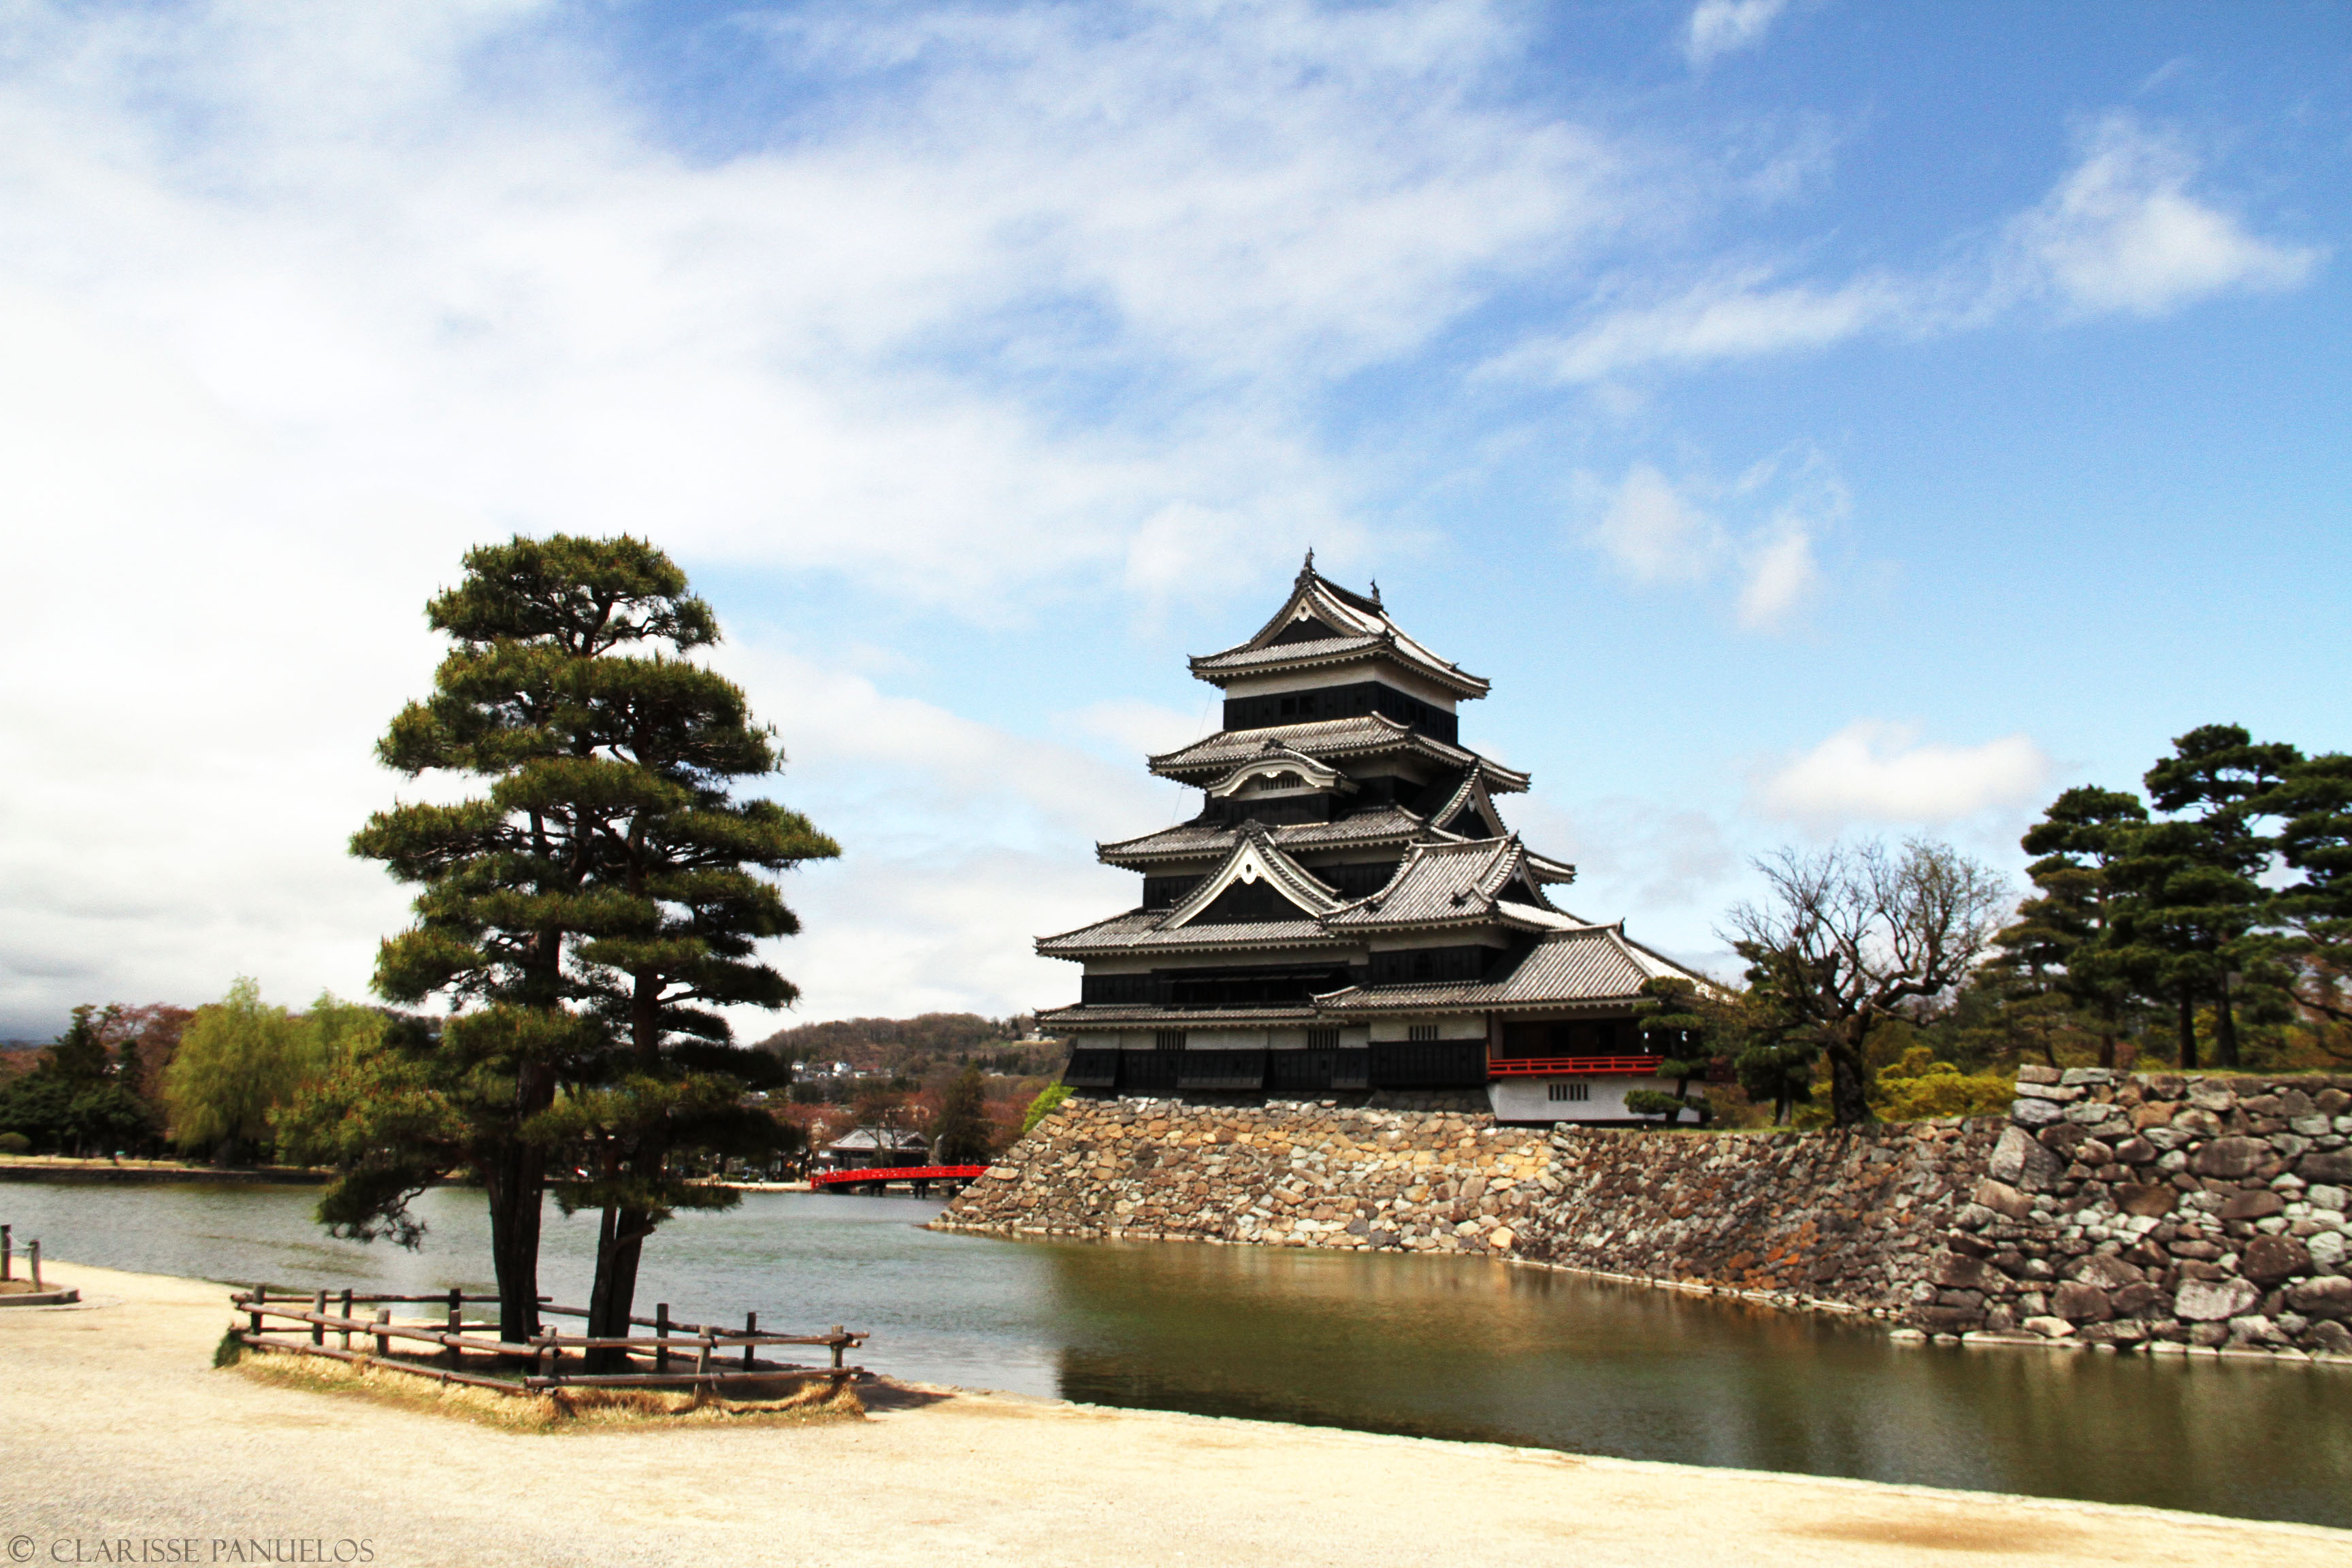 Matsumoto Castle 3 - Japan Travel Blog April 2015: Matsumoto Castle